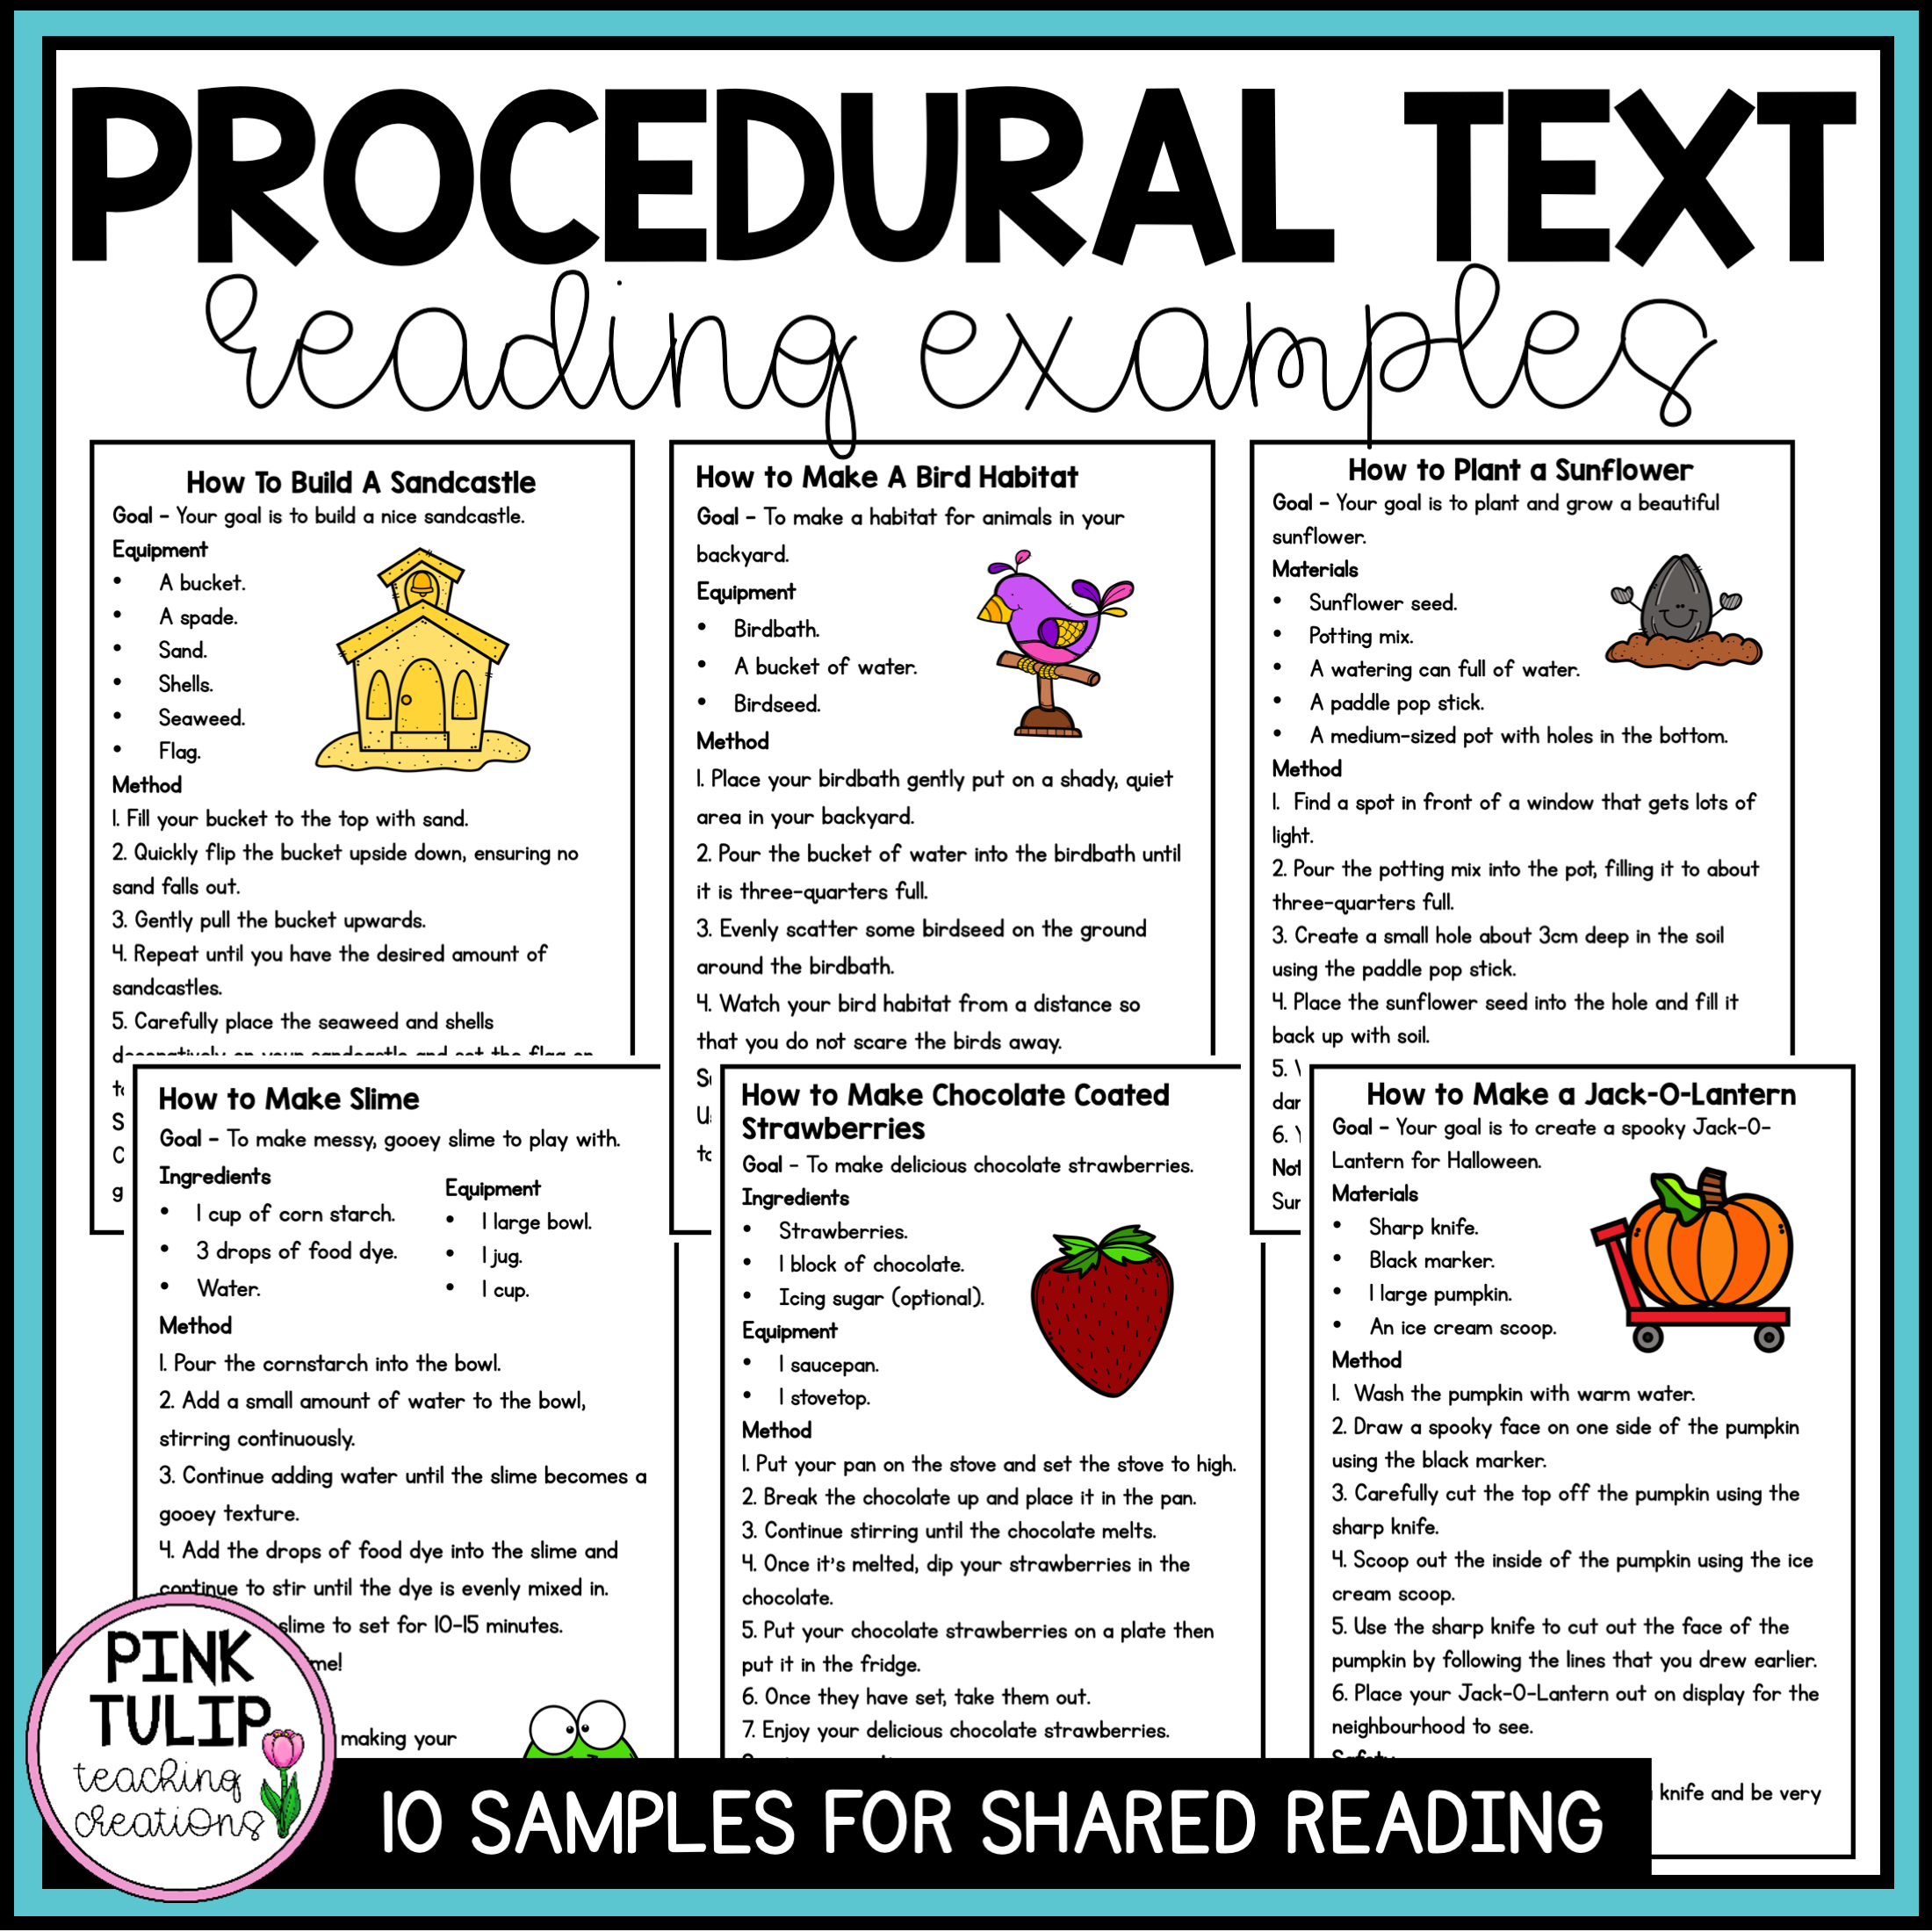 Procedural Text Examples - 10 Reading Samples   Procedural text [ 2200 x 2200 Pixel ]